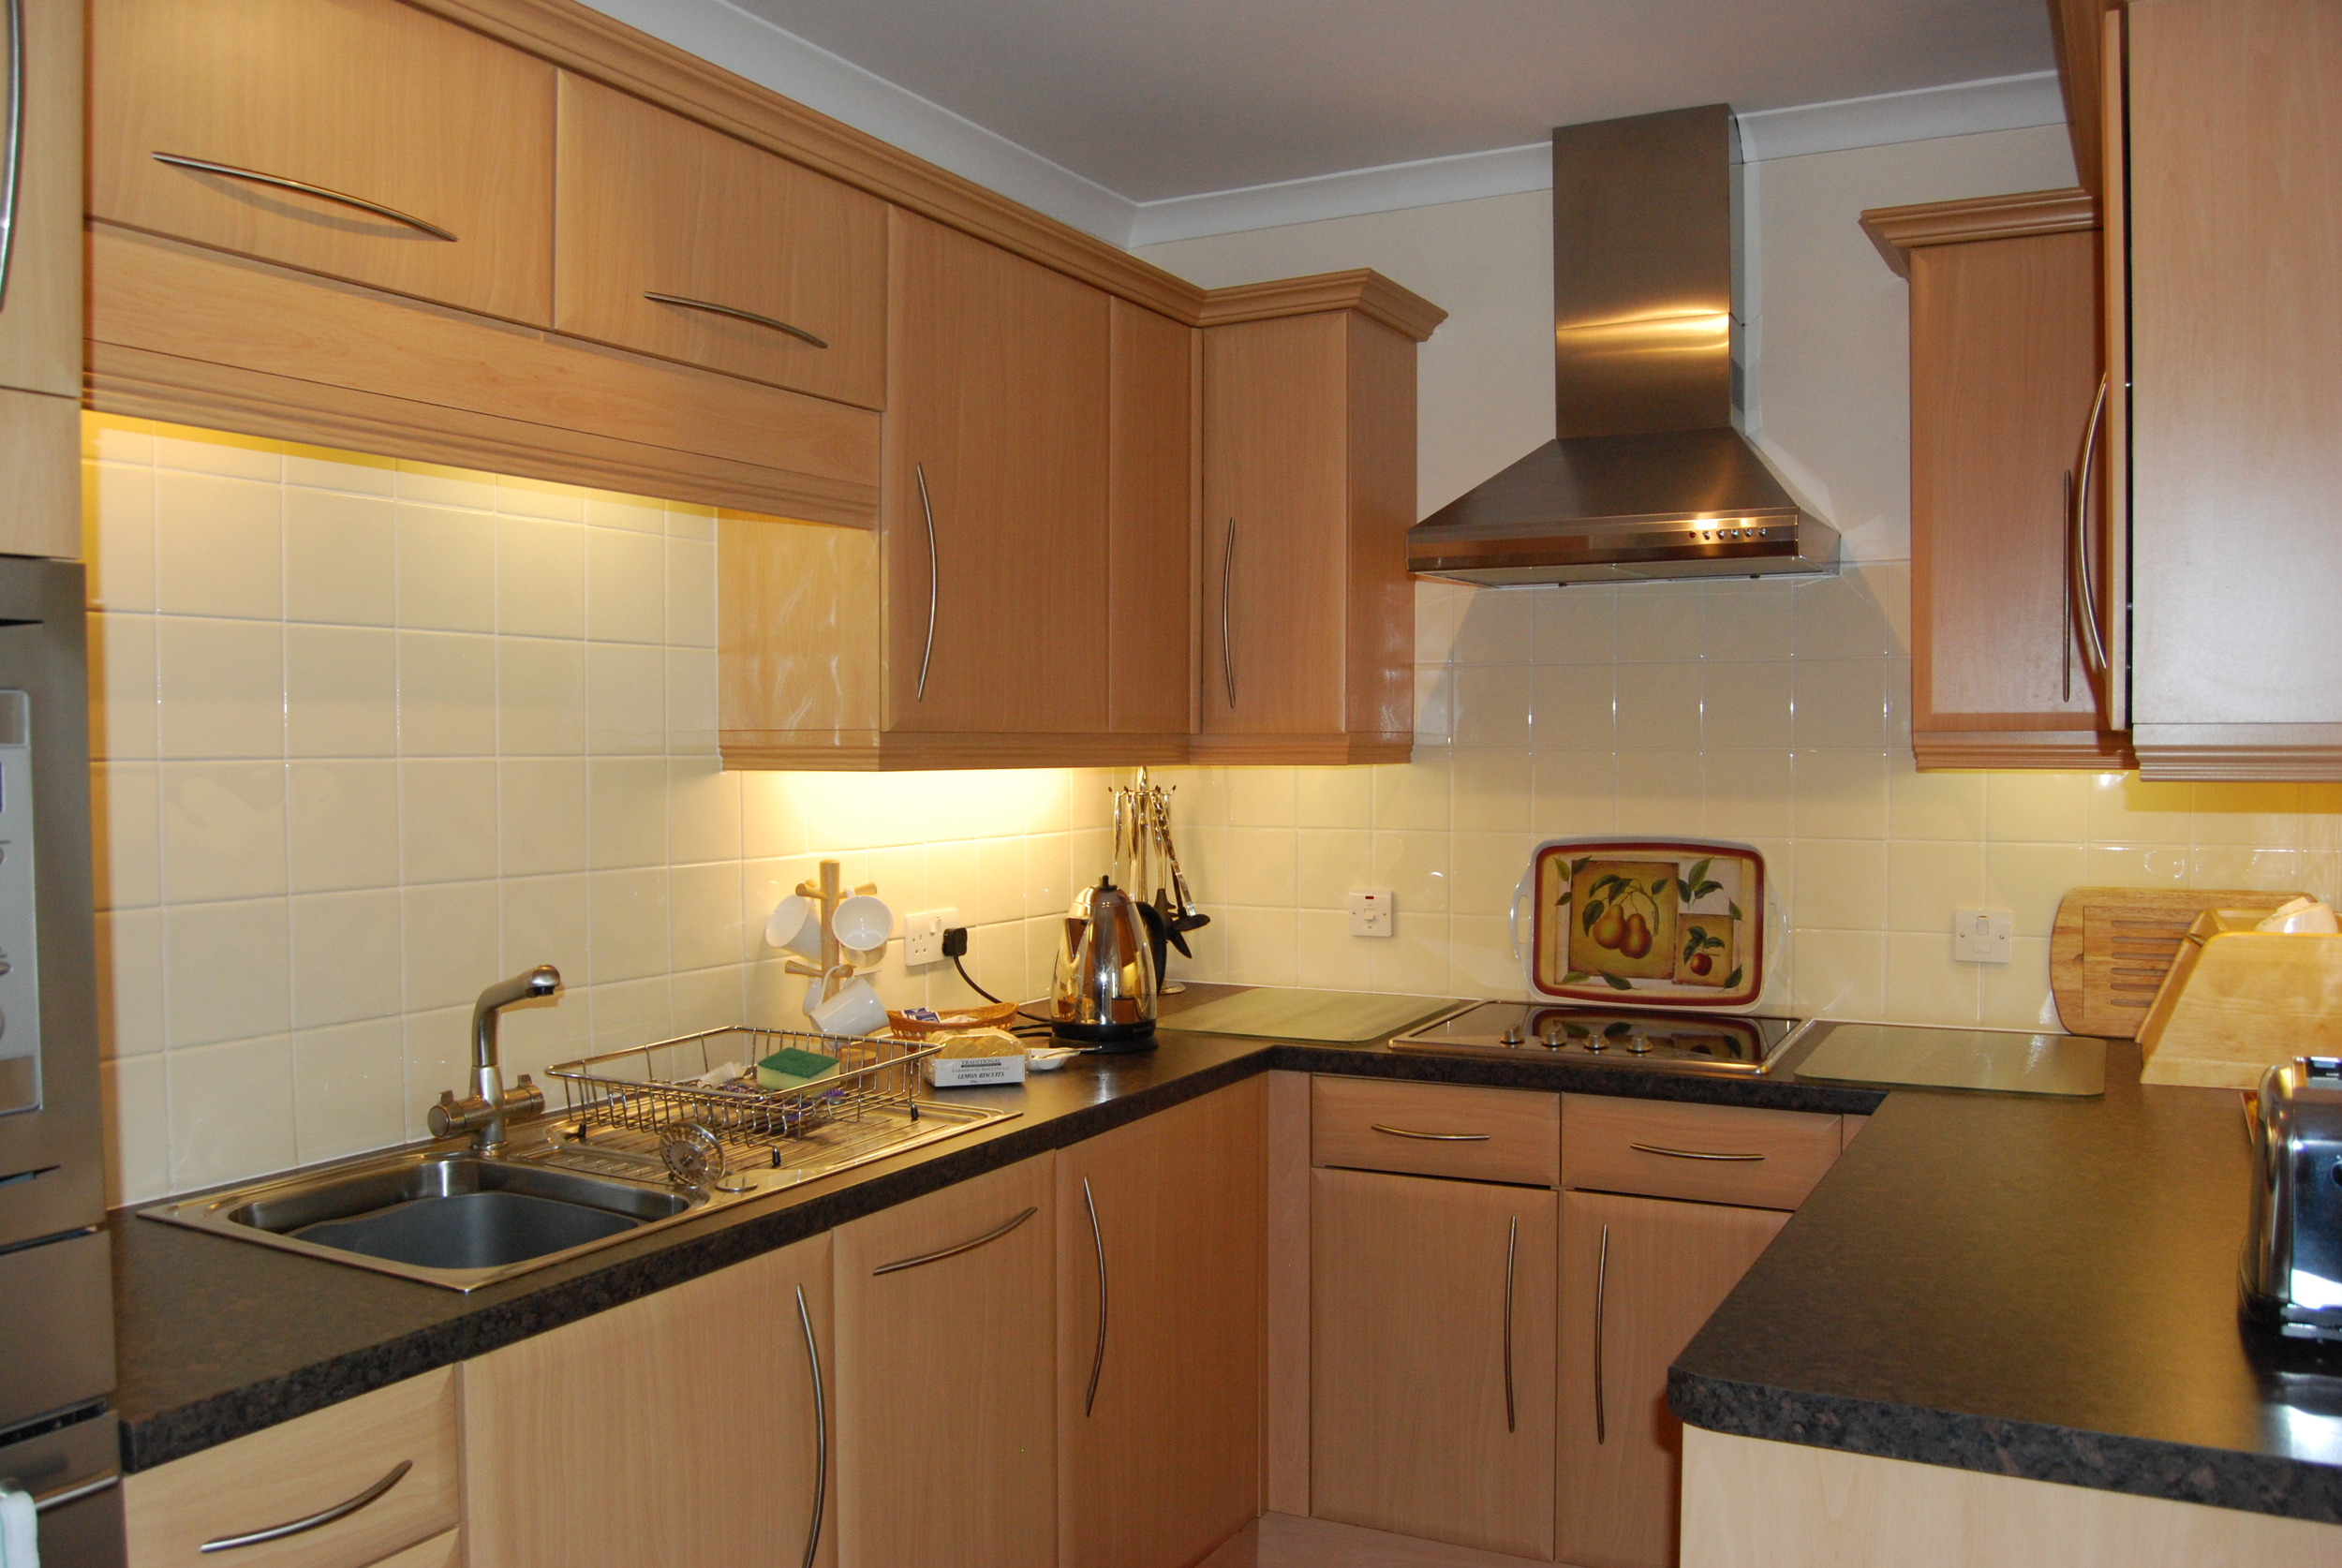 David Newman - Derwent Cottage Coach House Kitchen 1.JPG